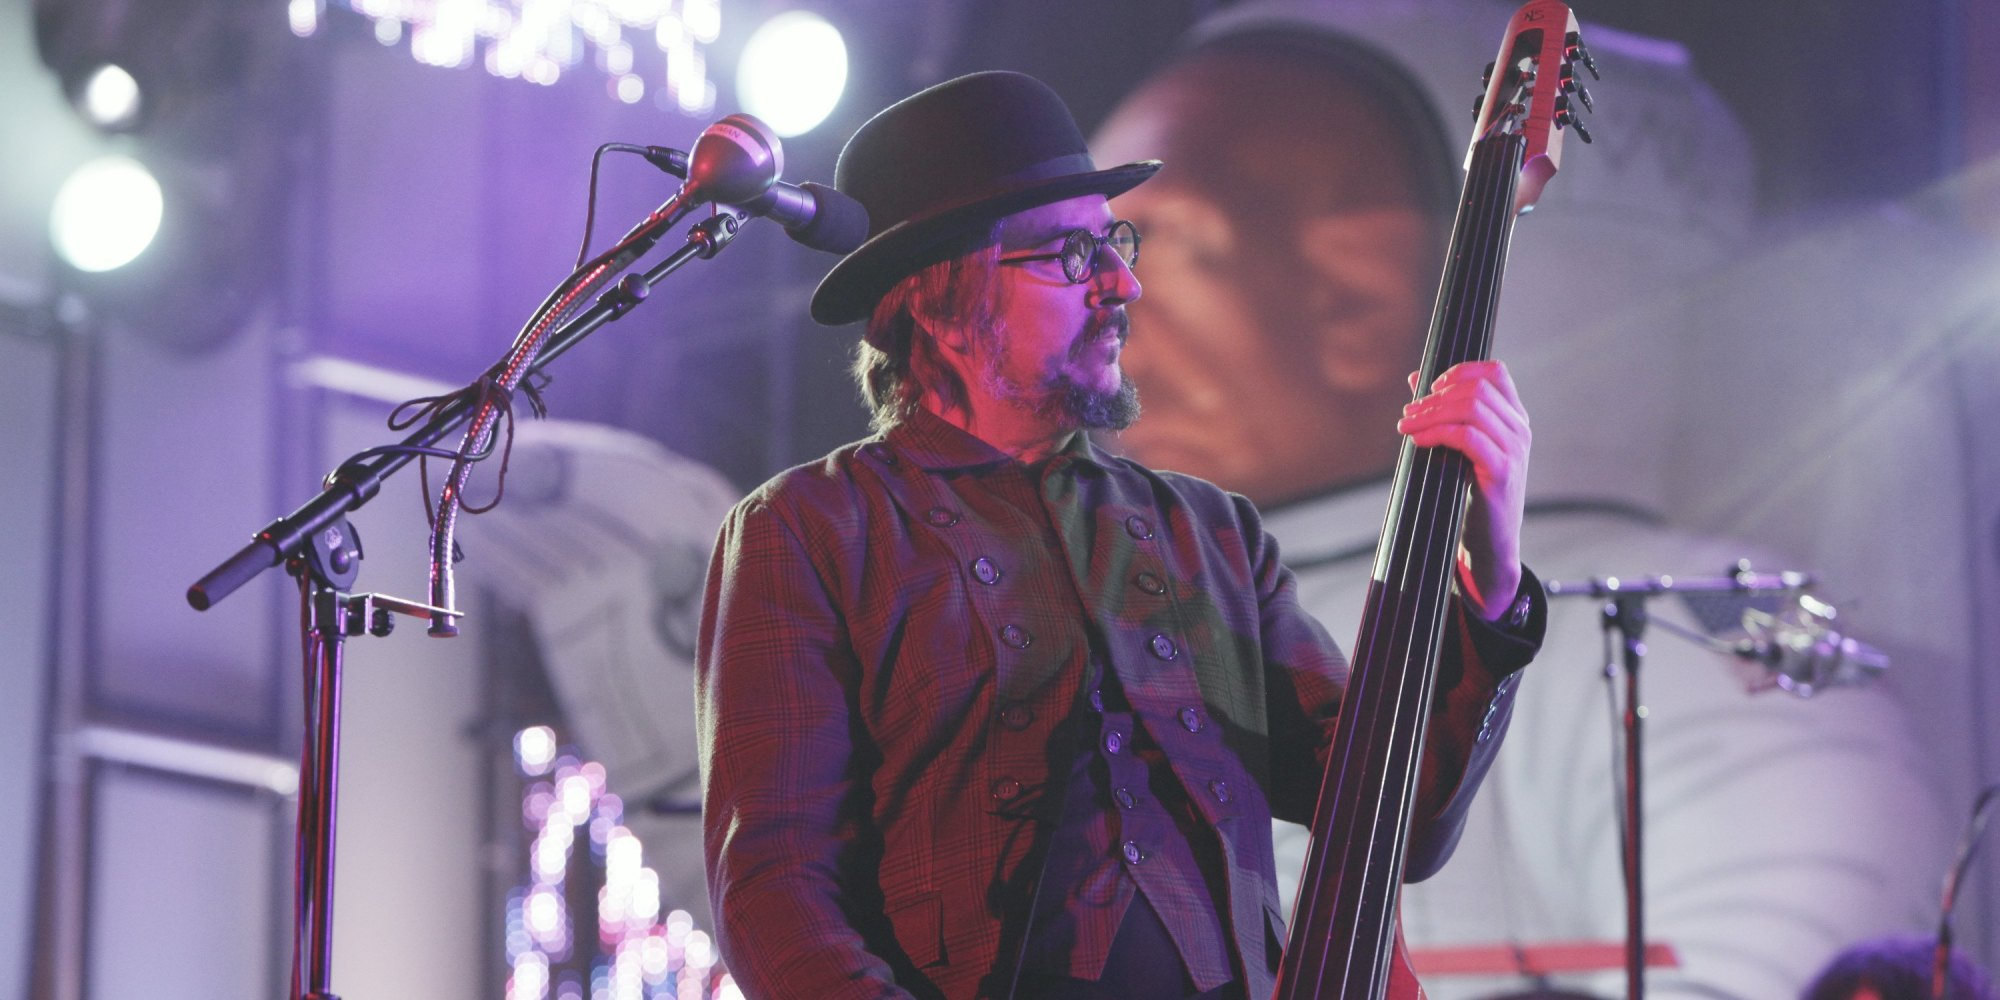 Primus Goes All Willy Wonka To Give Fans A Chance To Win